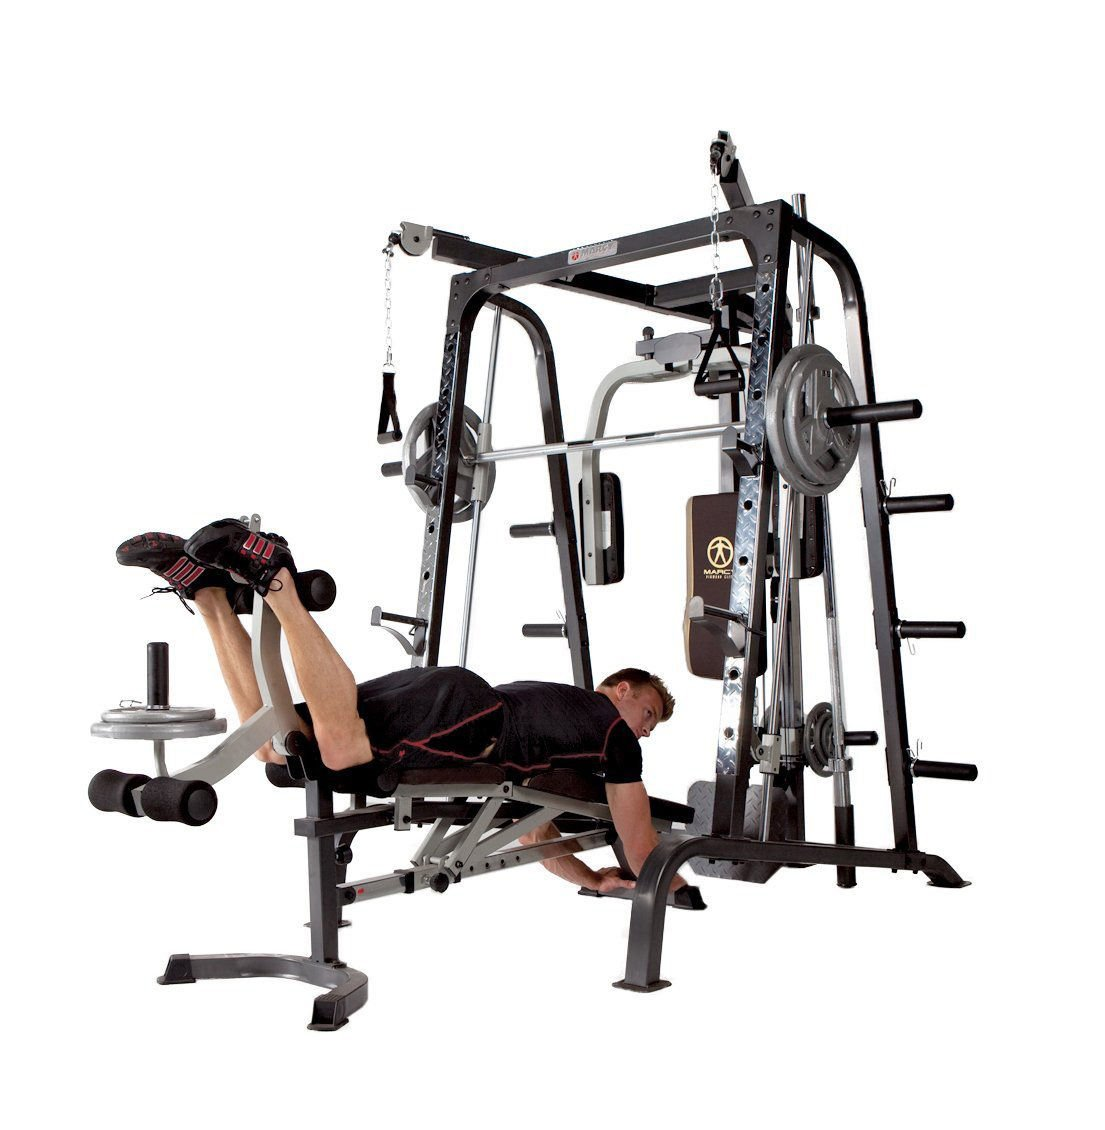 Amazon fitness equipment home gym workout smith cage machine